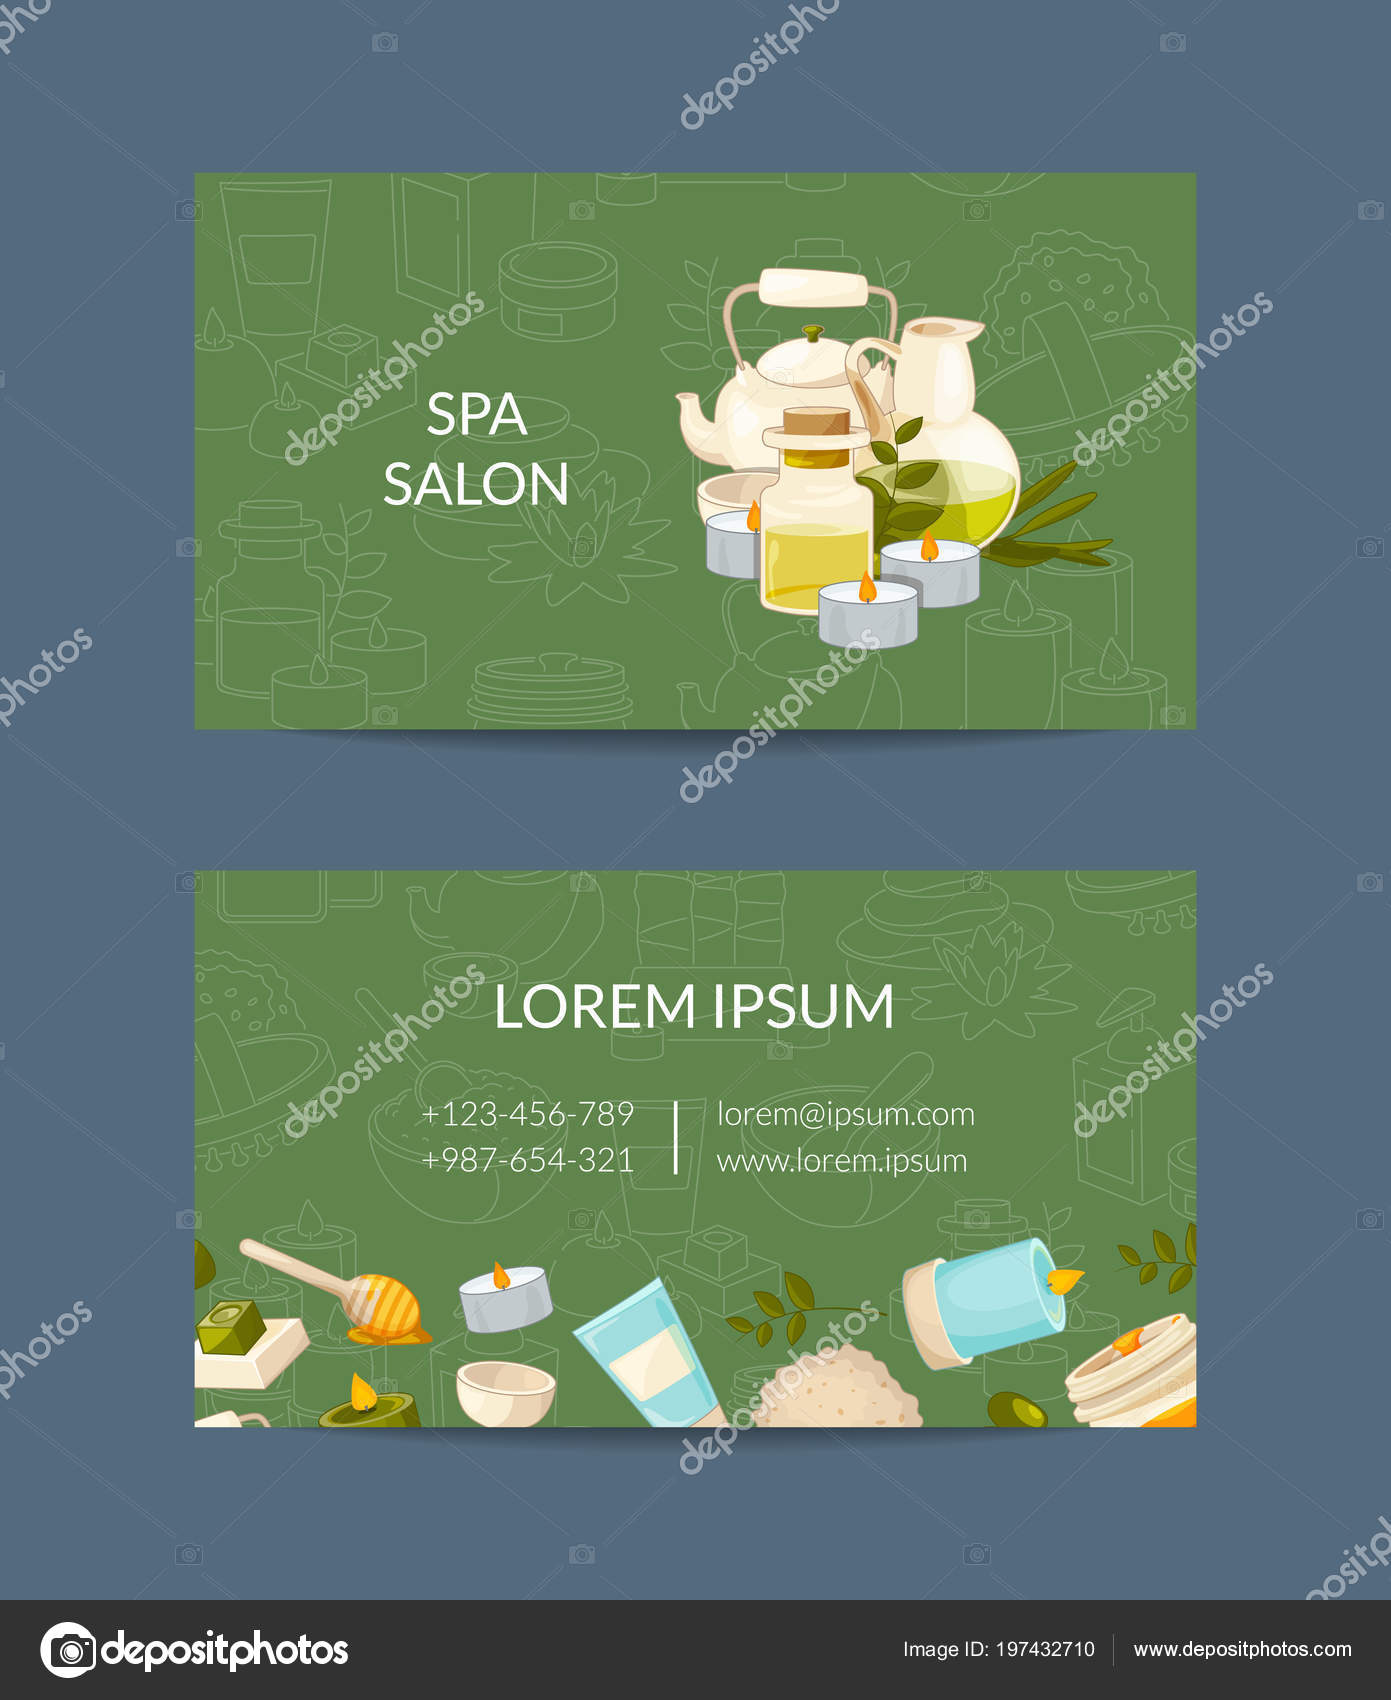 massage business card templates image collections